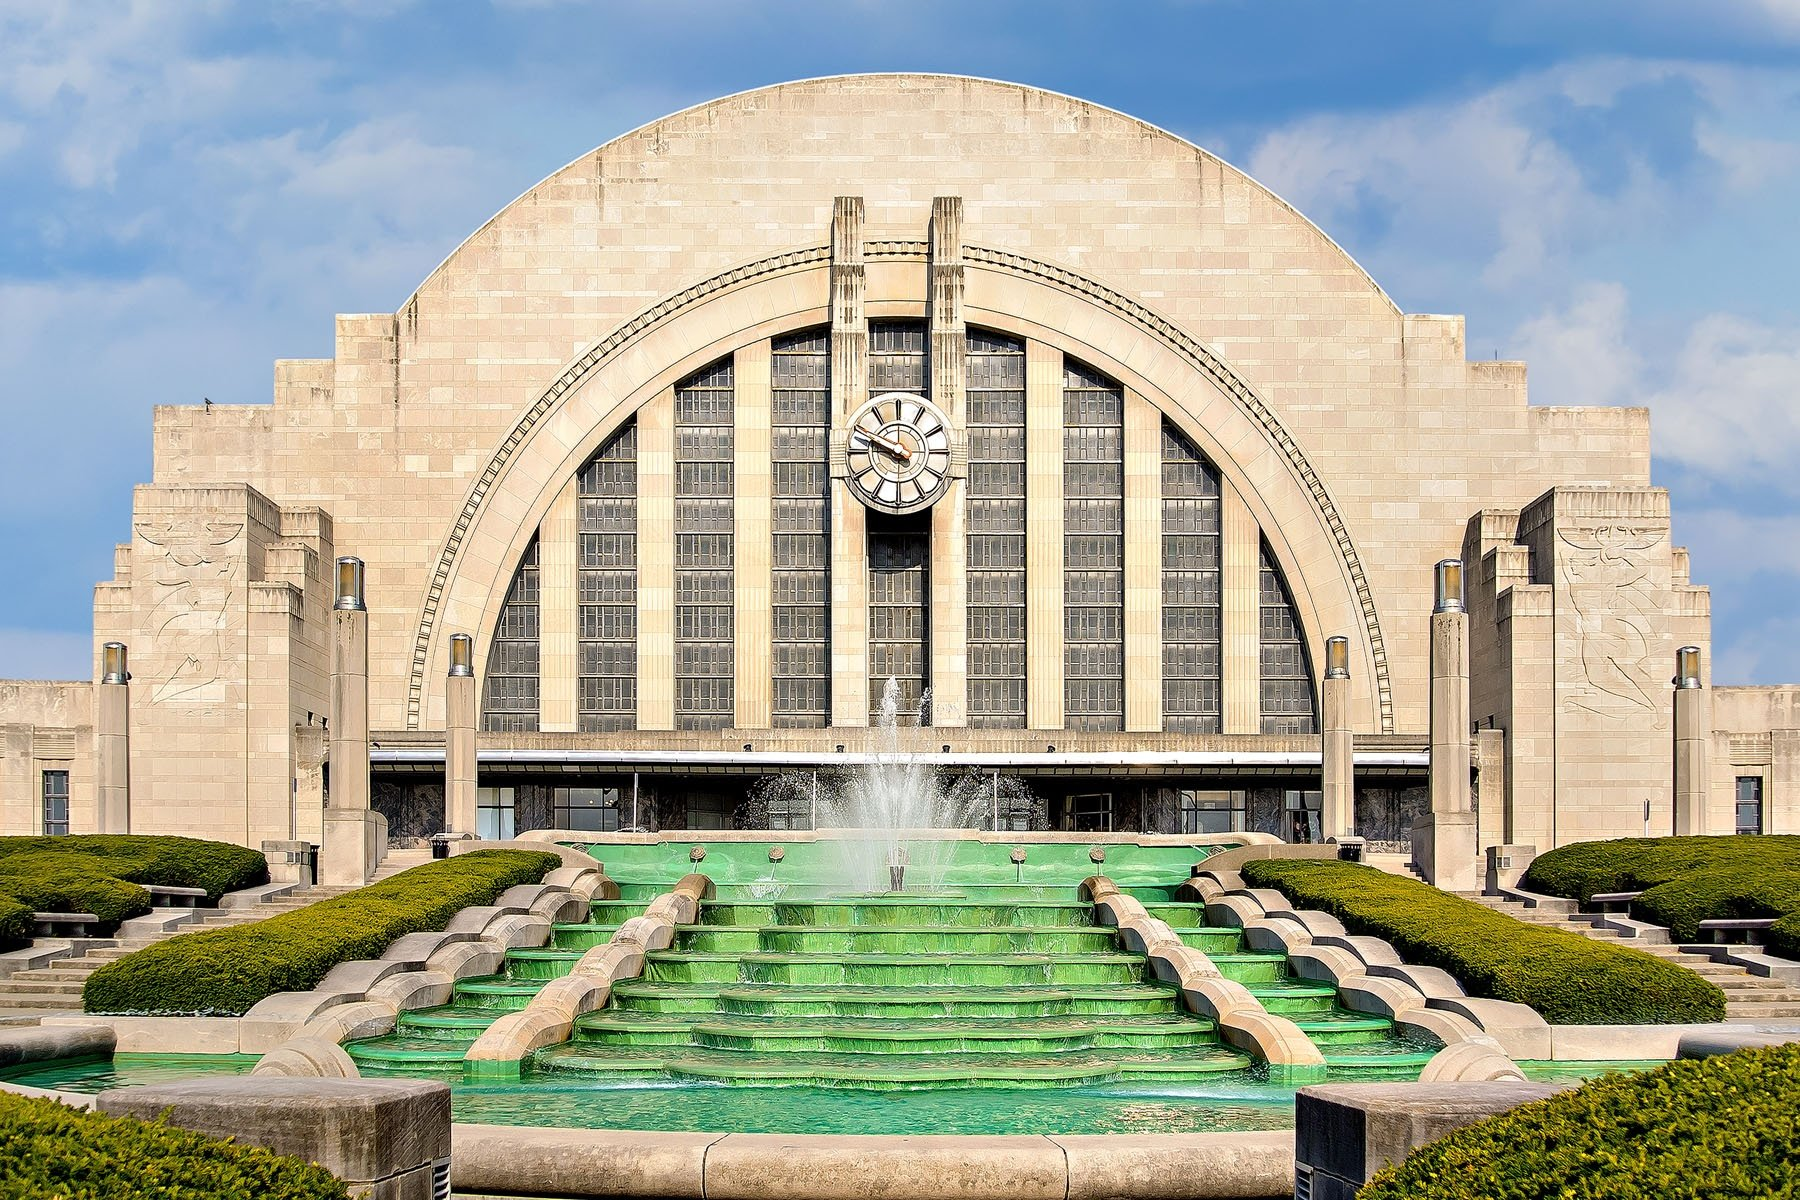 UNION - To us of the older generation, this will always be known as Union Terminal. To those with fewer years to their credit, it is referred to as the Museum Center.